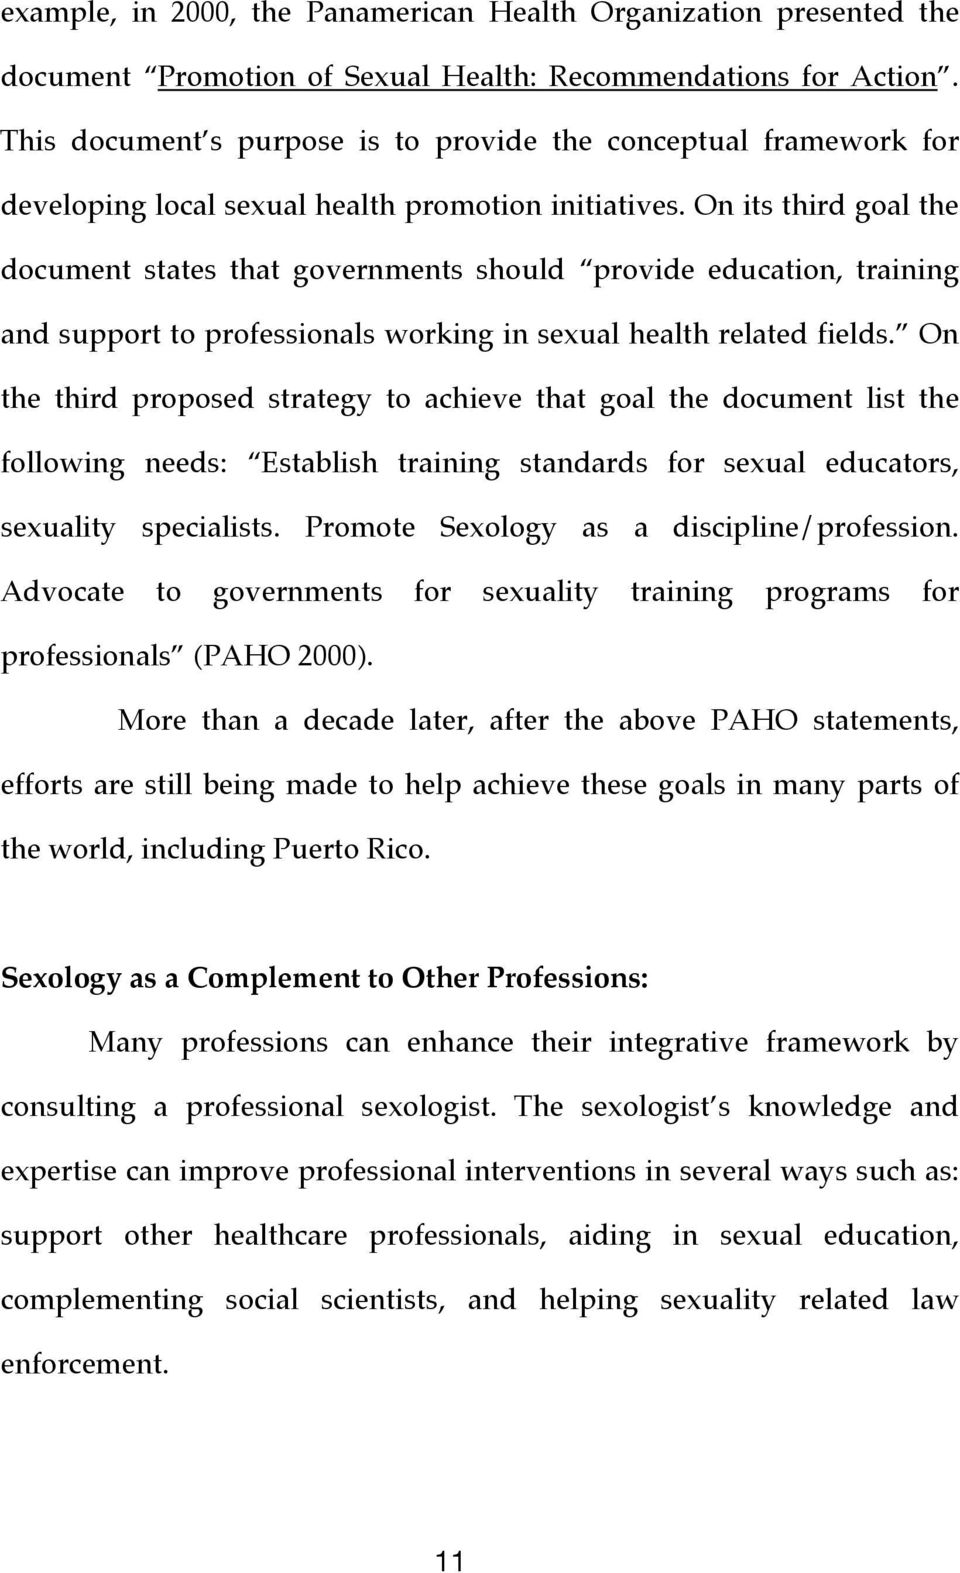 On its third goal the document states that governments should provide education, training and support to professionals working in sexual health related fields.